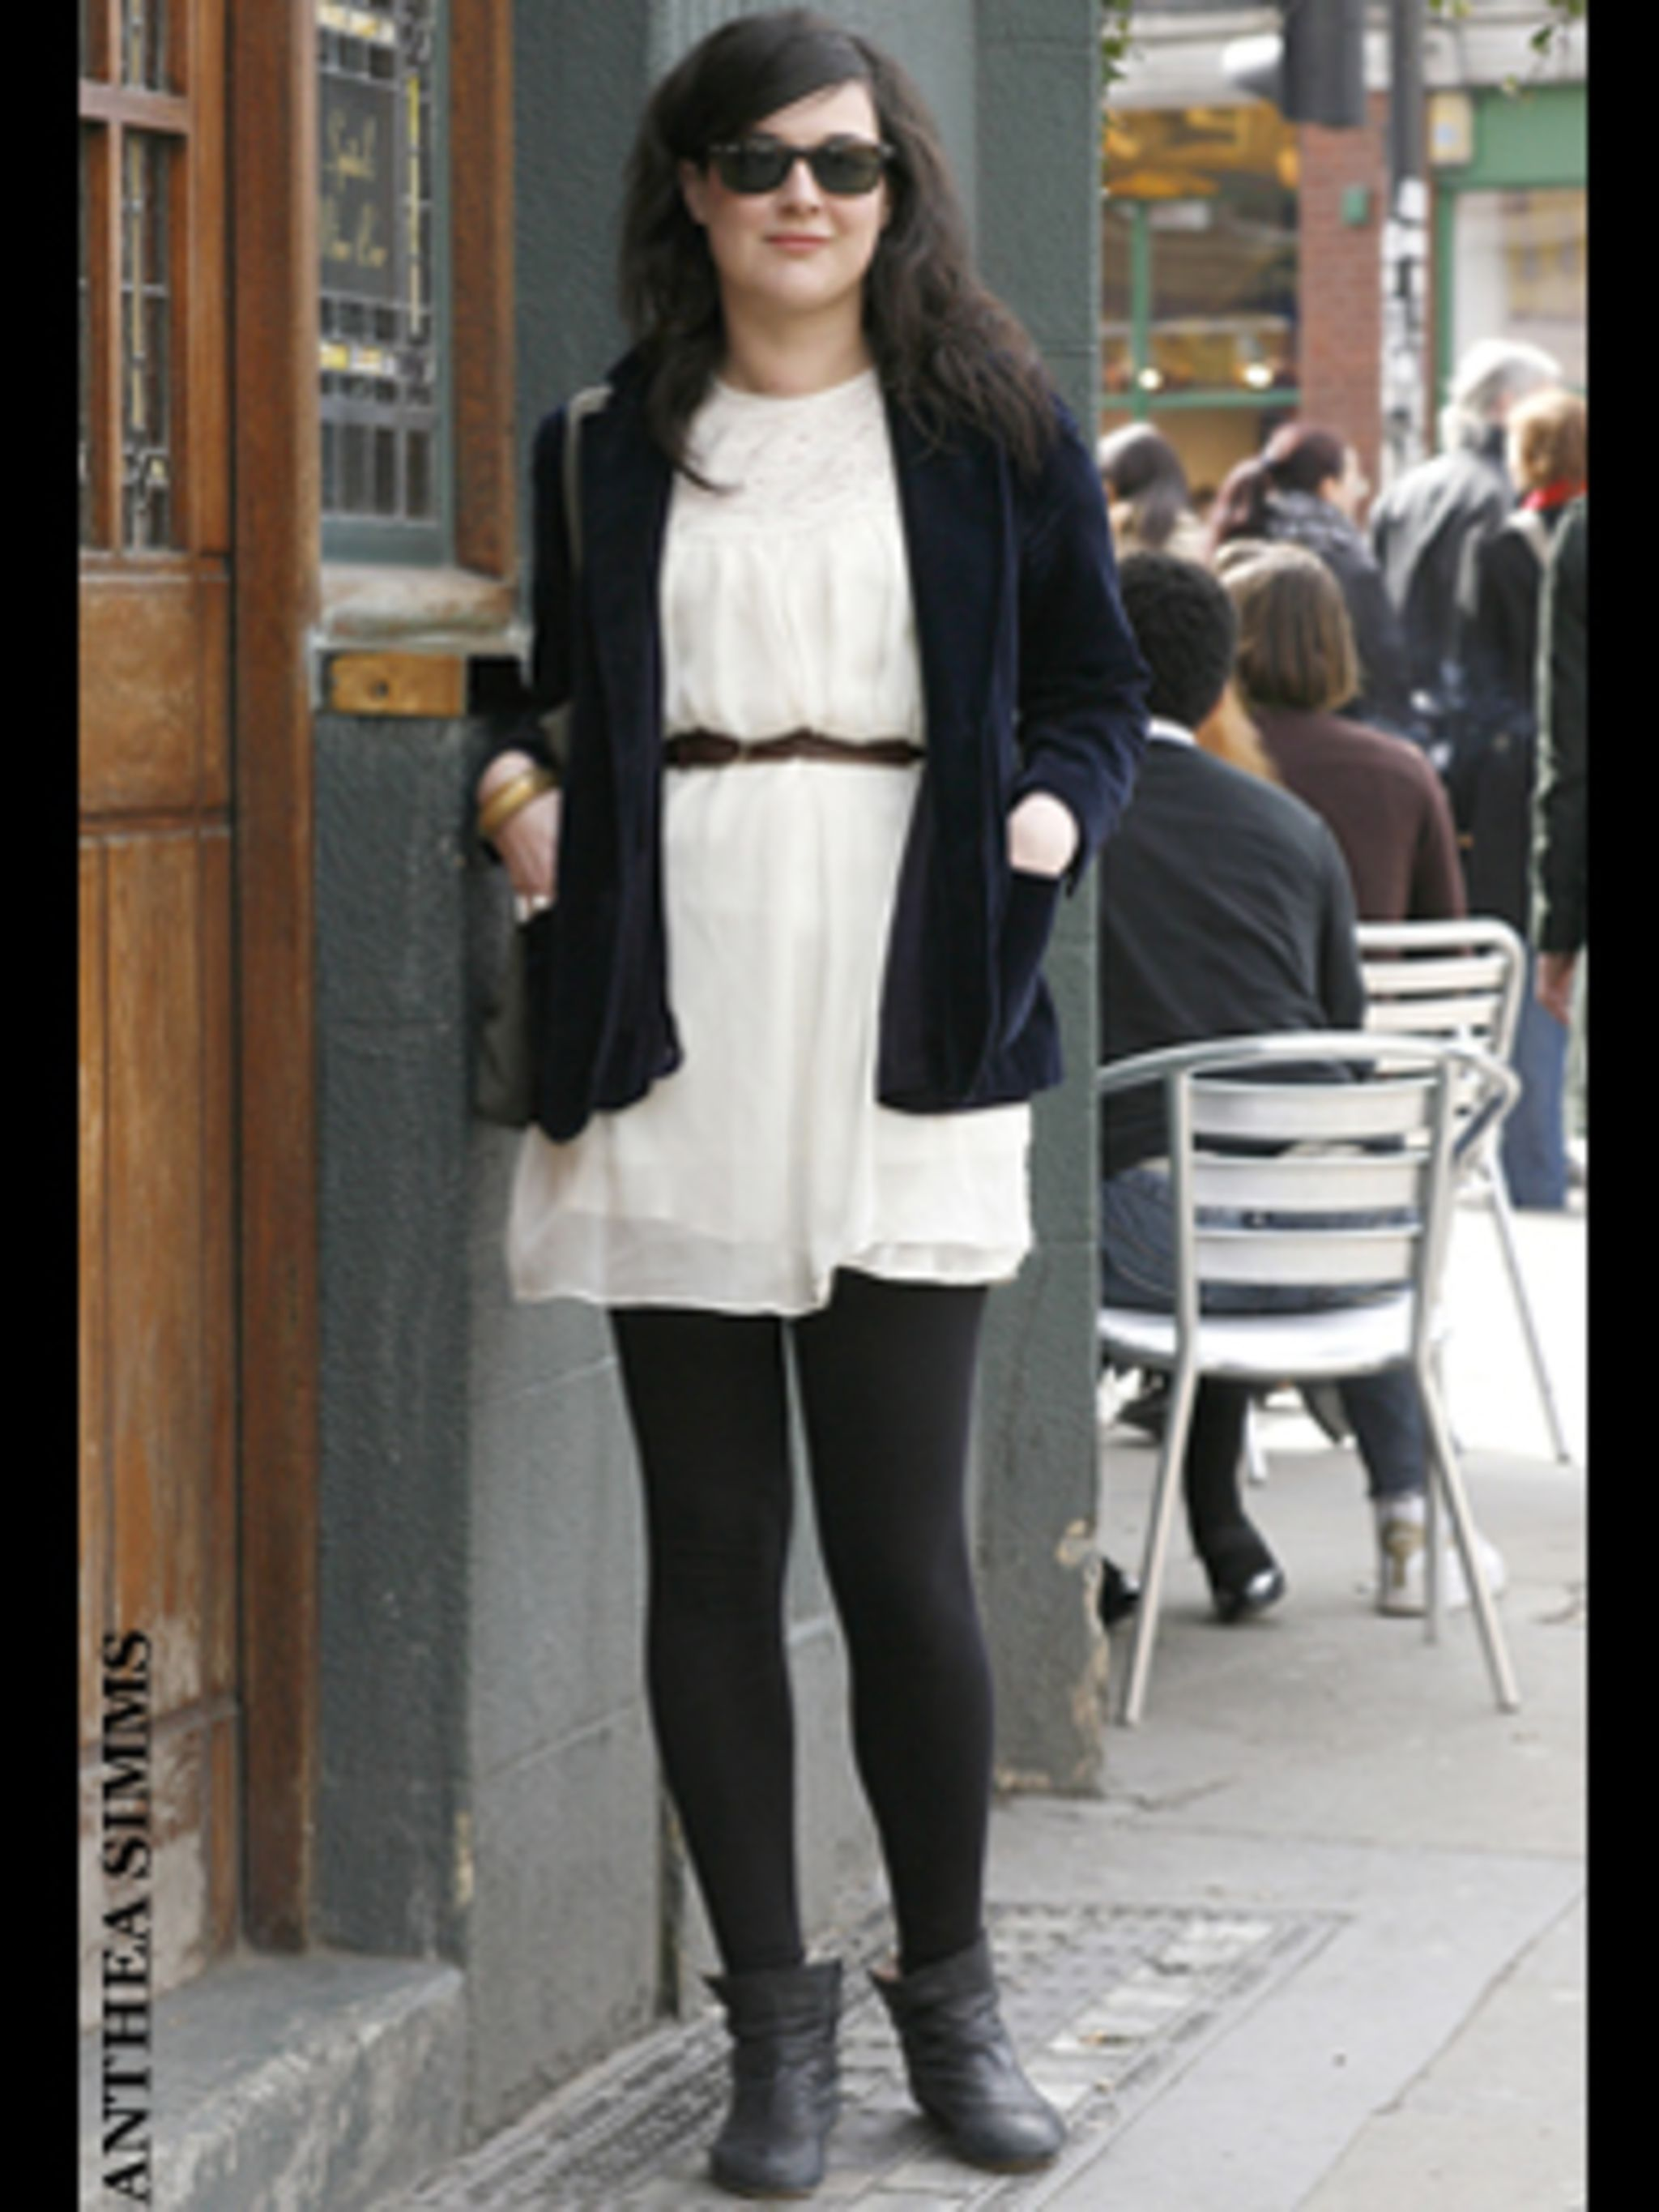 <p>Take a lesson in summer dressing from Nicola - she's got her outfit just right. She's taken a simple white Topshop dress and teamed it with vintage finds to make the look her own. We love the addition of the velvet jacket - it smartens up the dress and